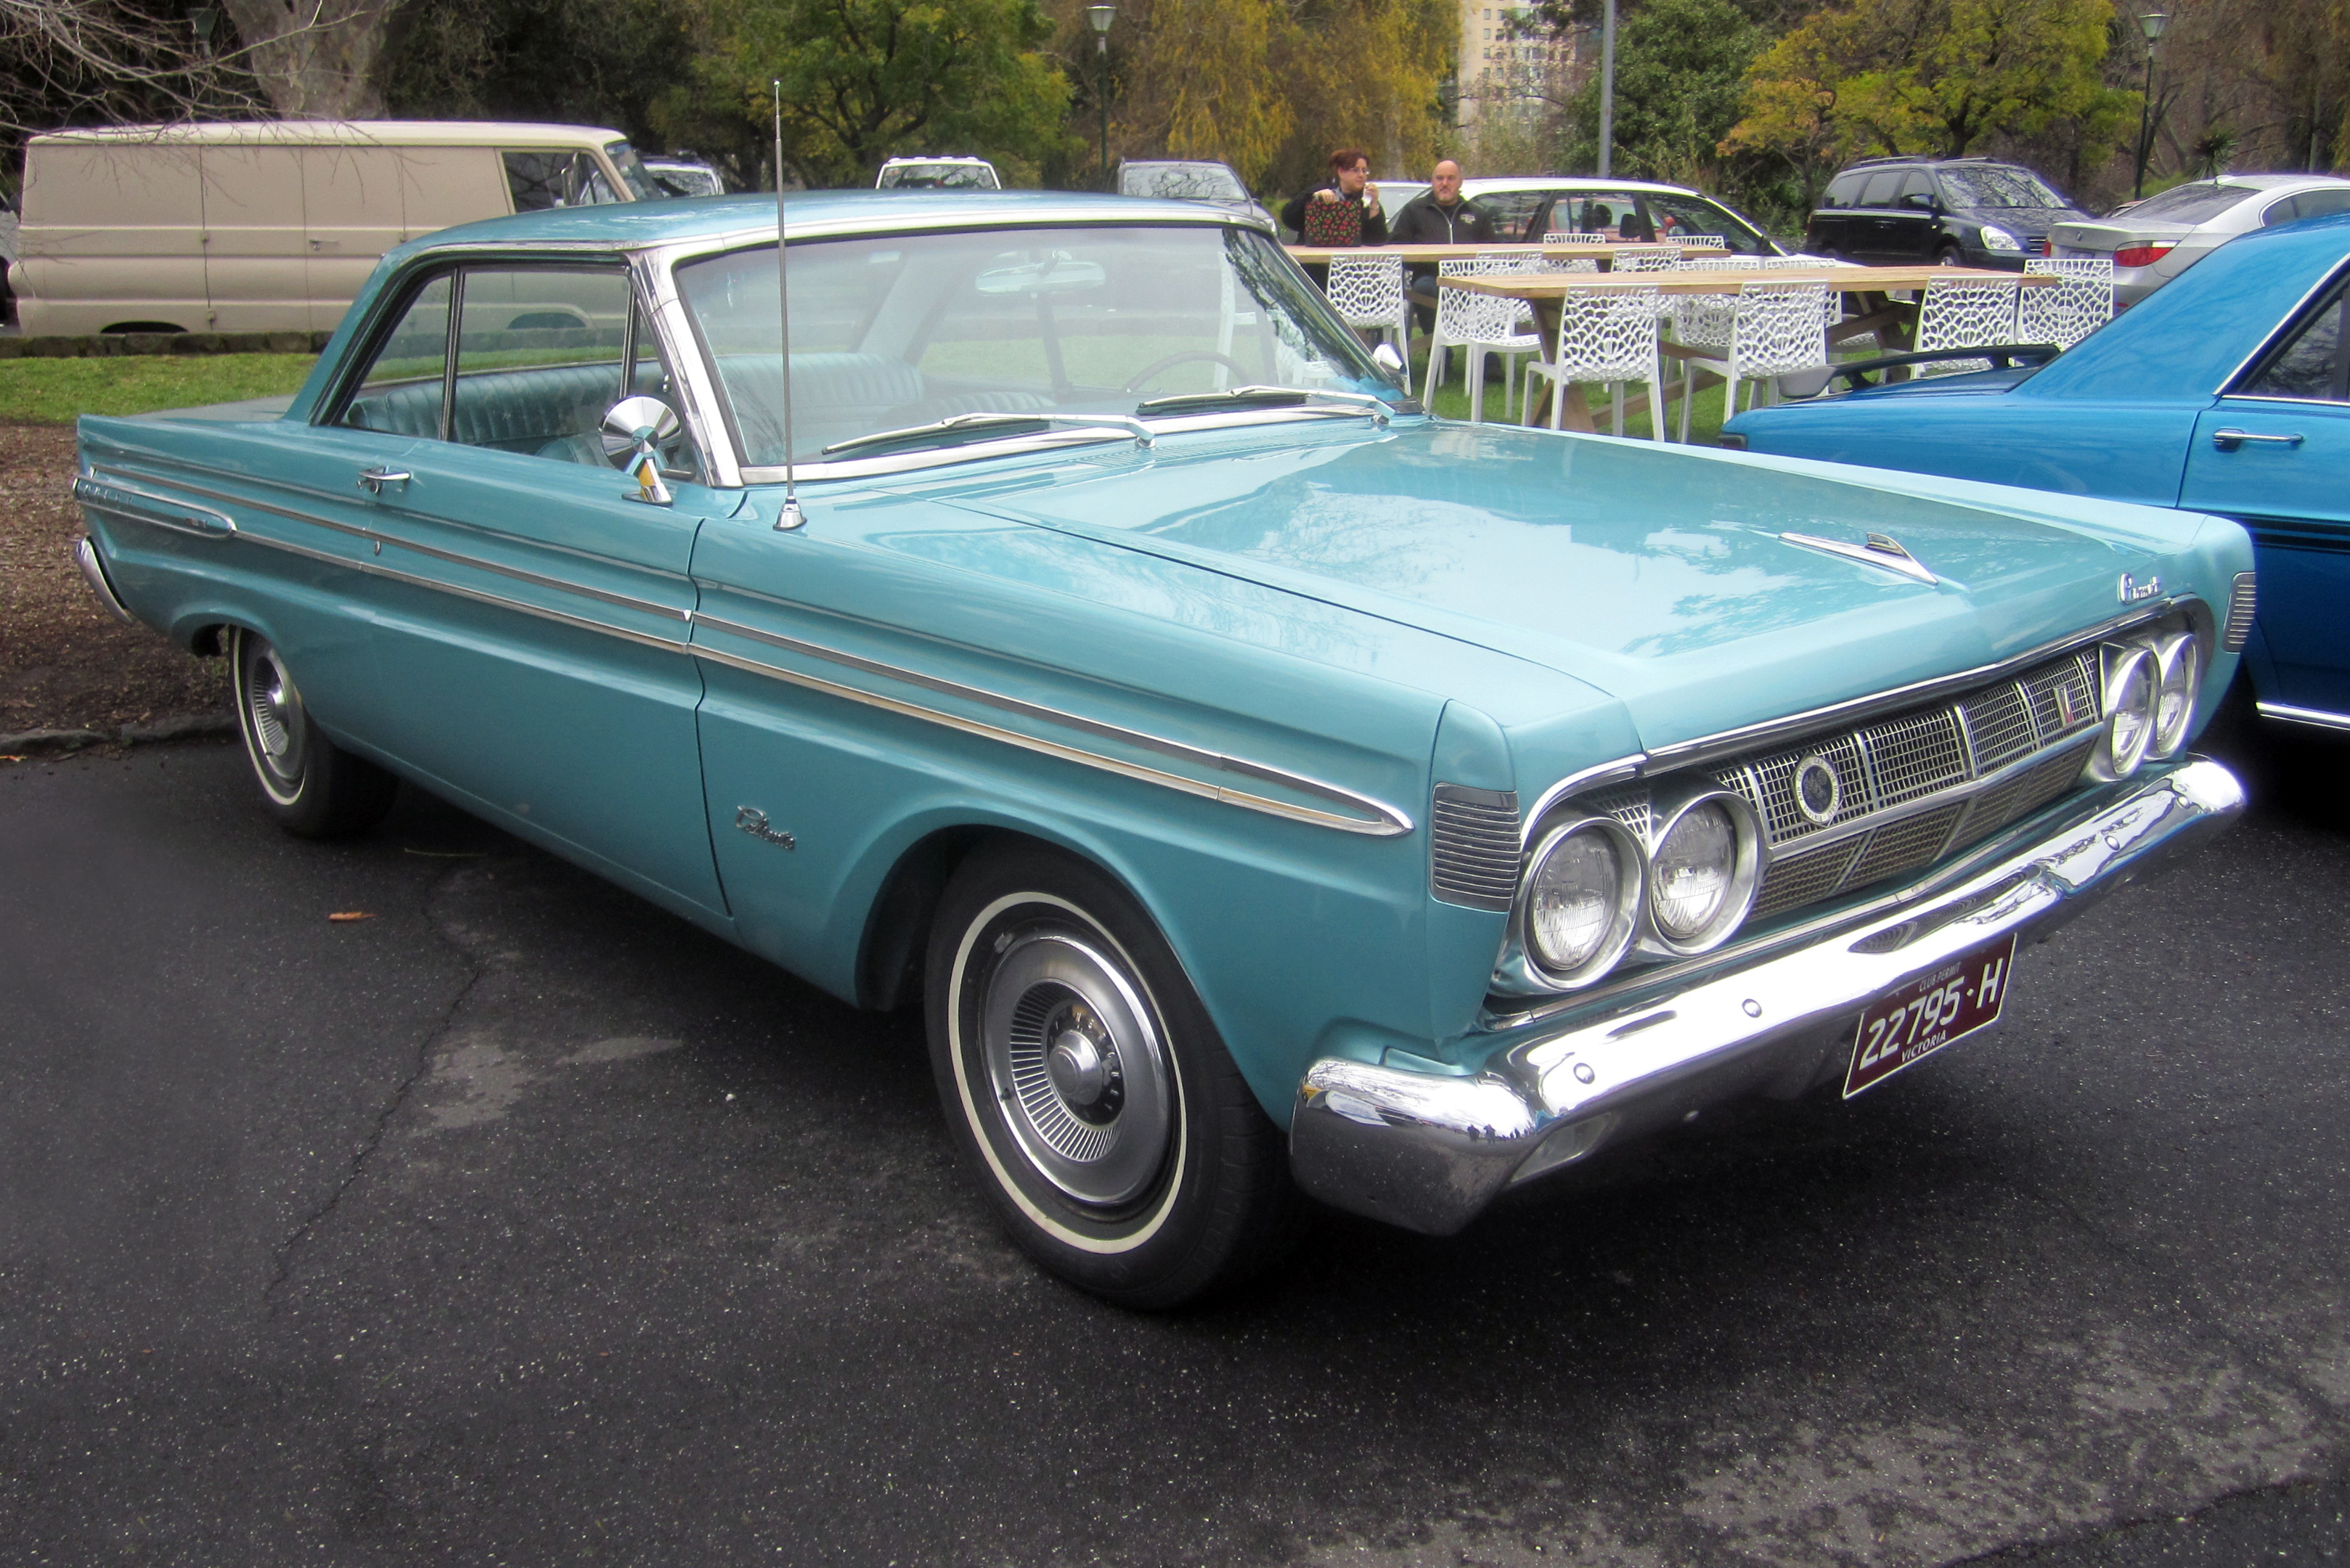 Mercury Comet Wikipedia 1969 Ford Fairlane Muscle Cars 1964 Caliente Coupe 9321170381